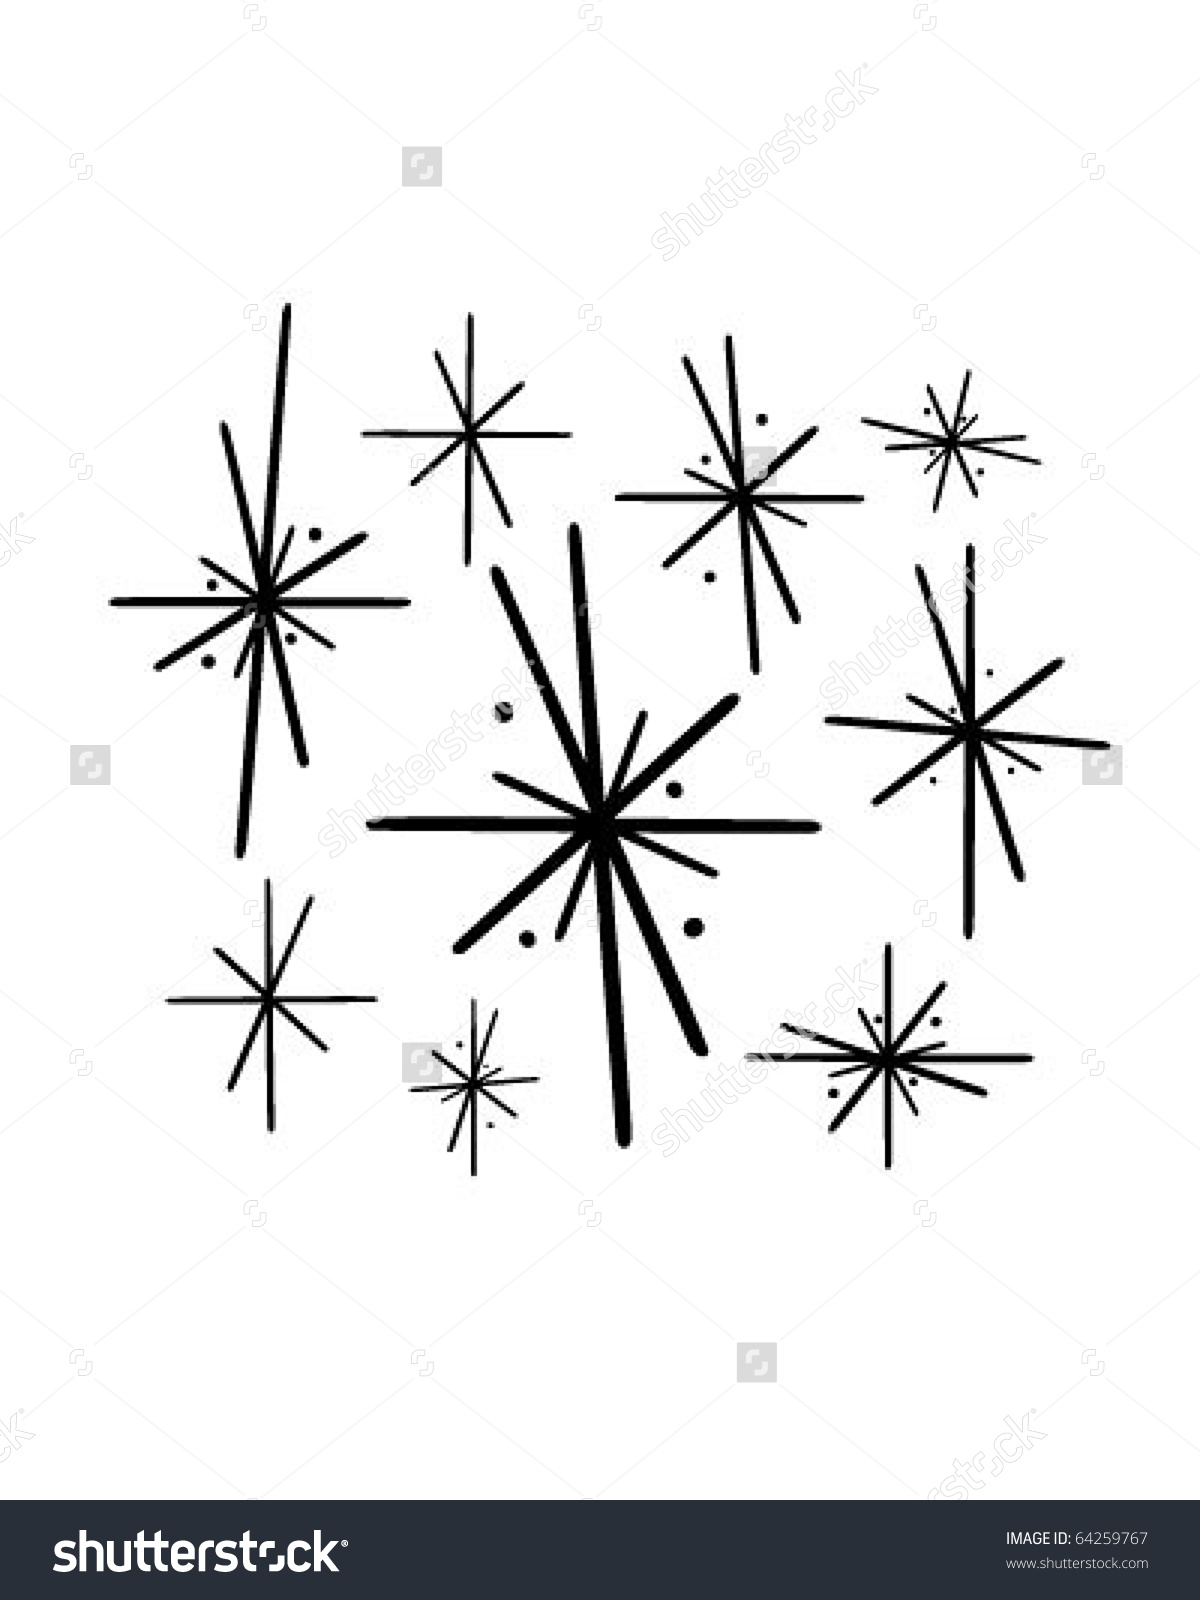 Retro Stars 2 Retro Clipart Stock Vector 64259767.